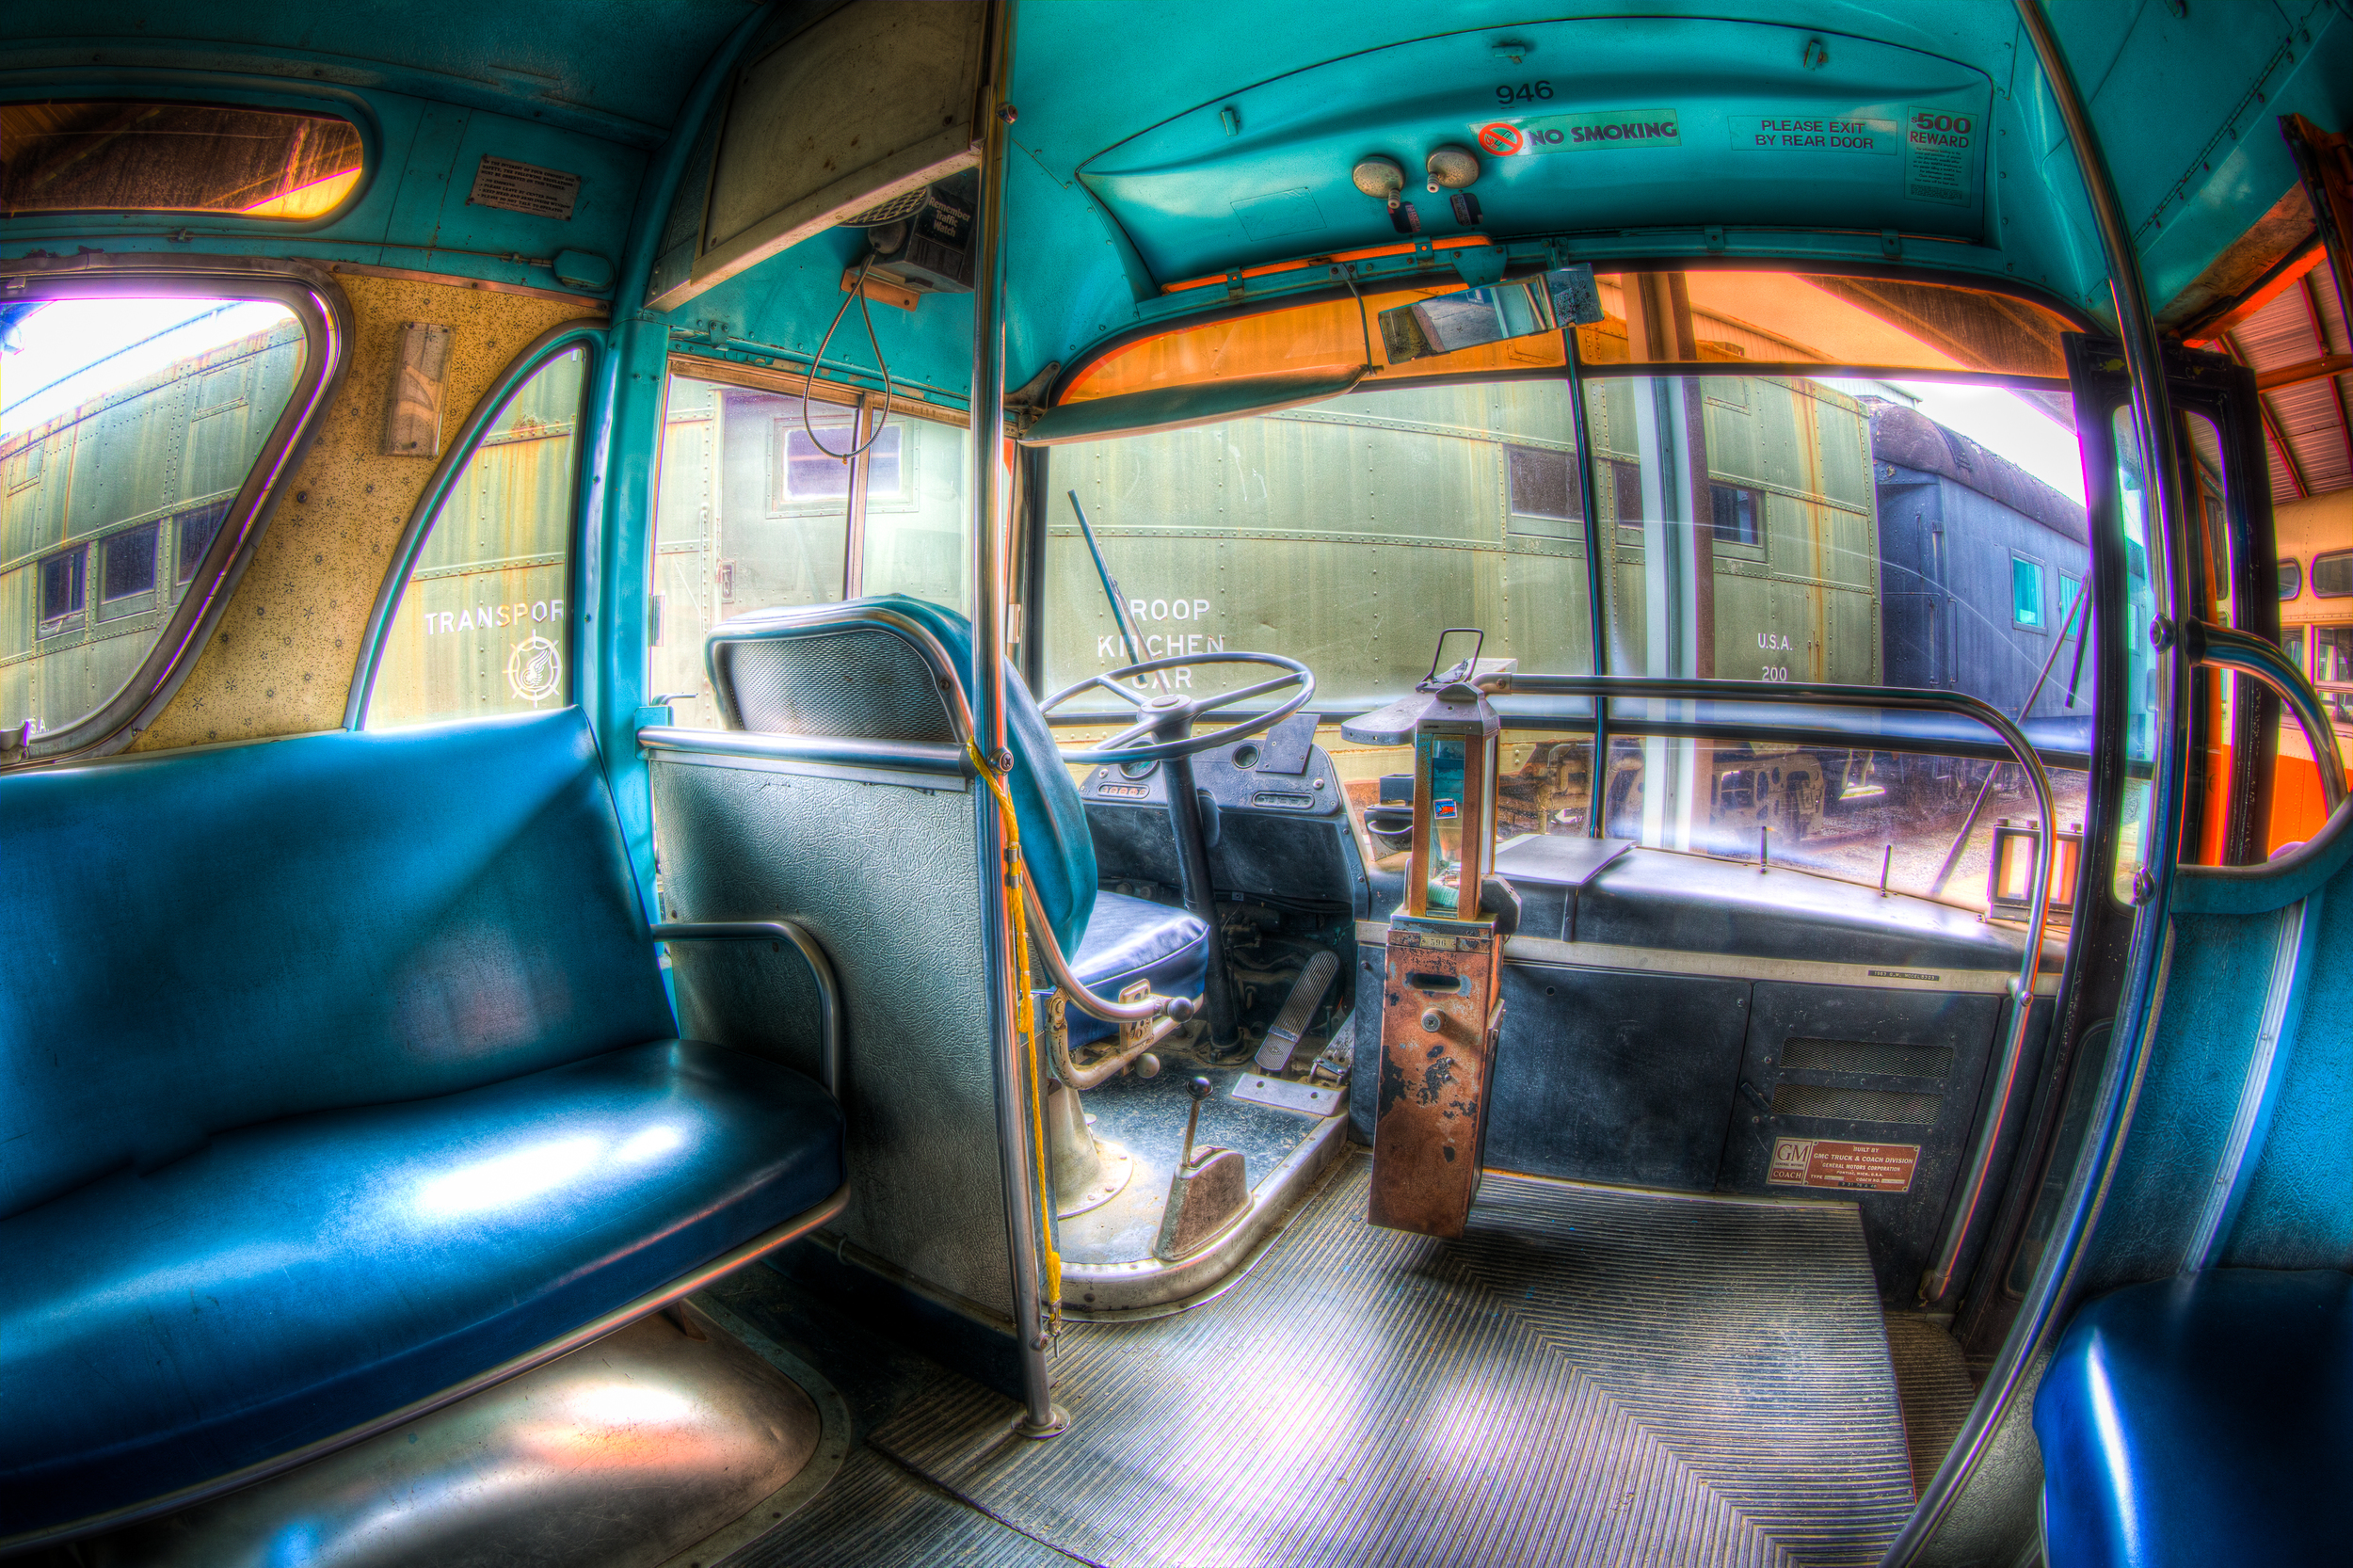 An image taken at the Southeast Railway Museum on an old bus.